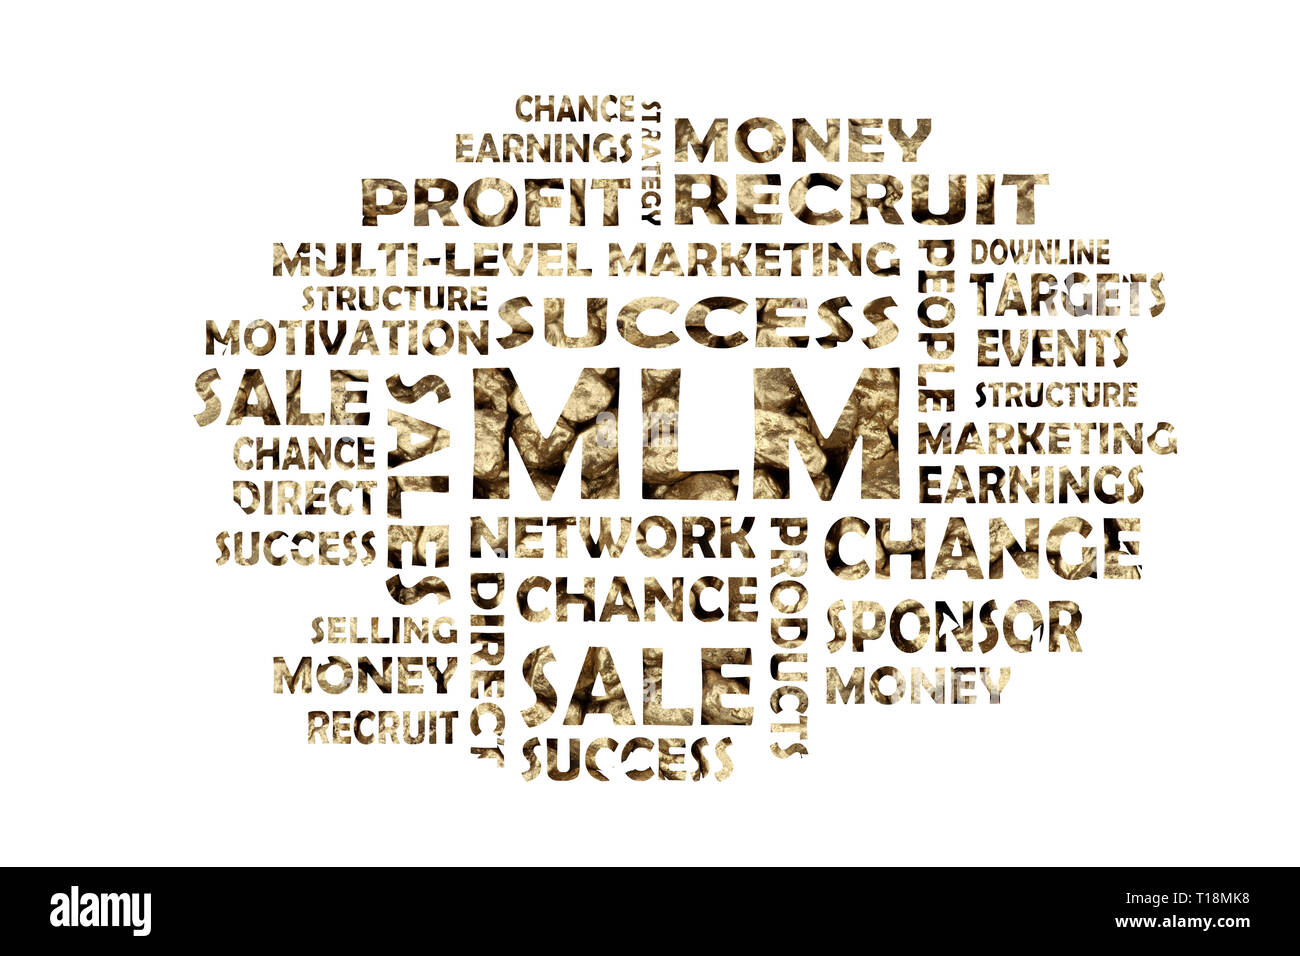 Word cloud with golden keywords out of the area mlm, network marketing and direct sales - Stock Image